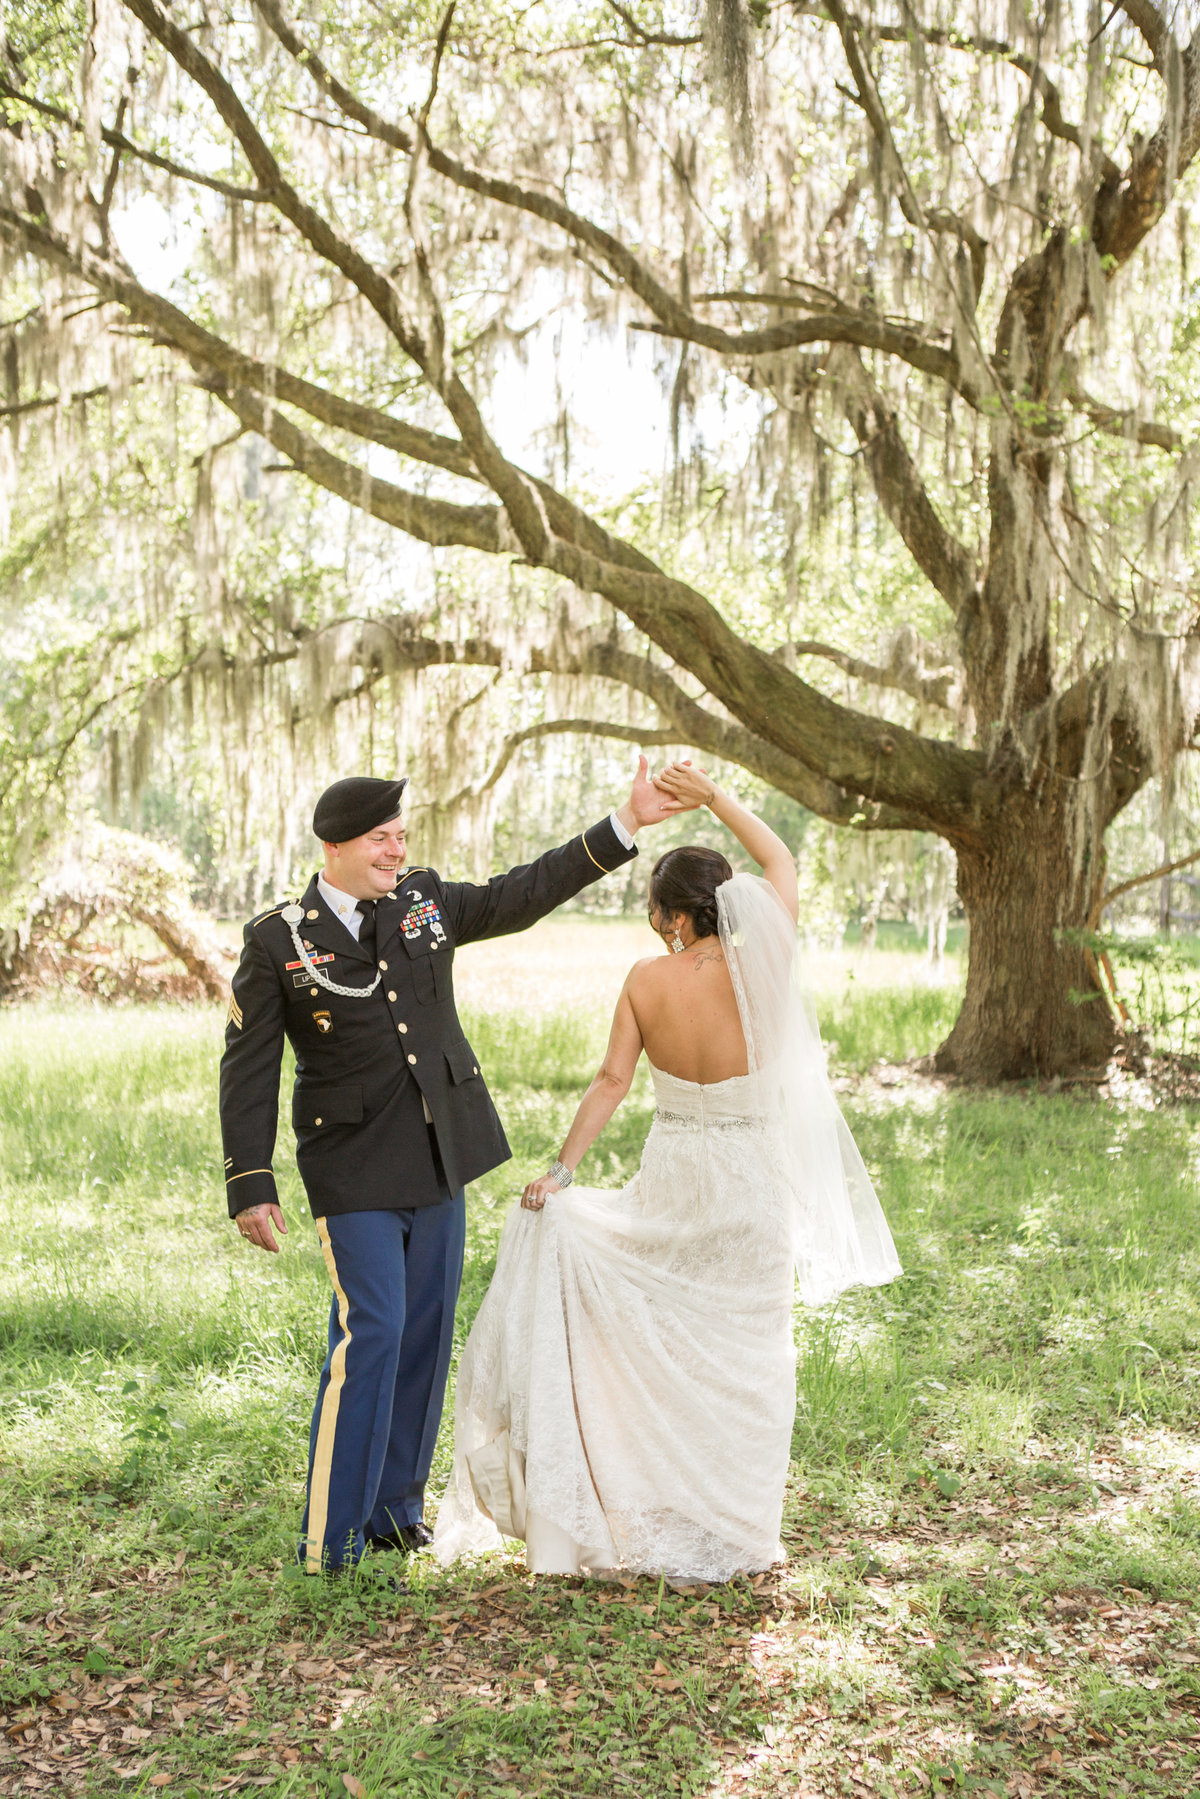 marine groom twirling bride at mackey house savannah georgia after their savannah weding